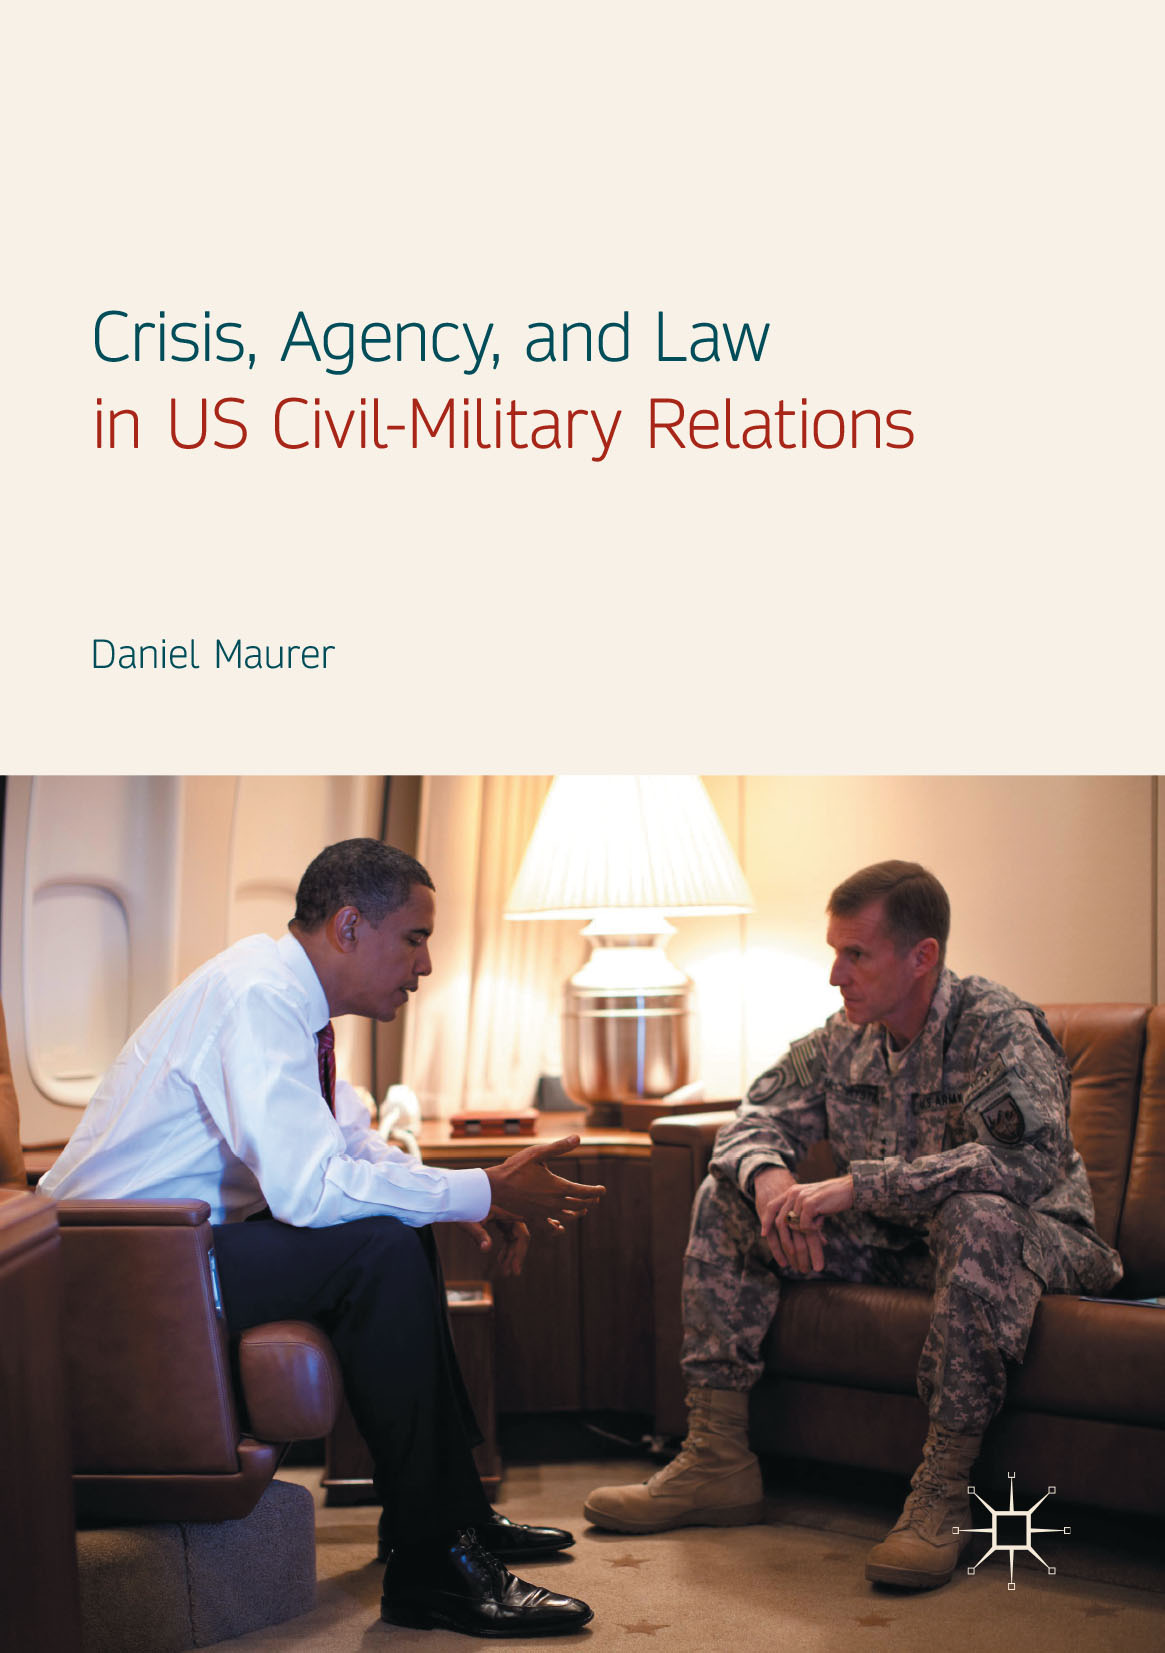 Maurer, Daniel - Crisis, Agency, and Law in US Civil-Military Relations, ebook